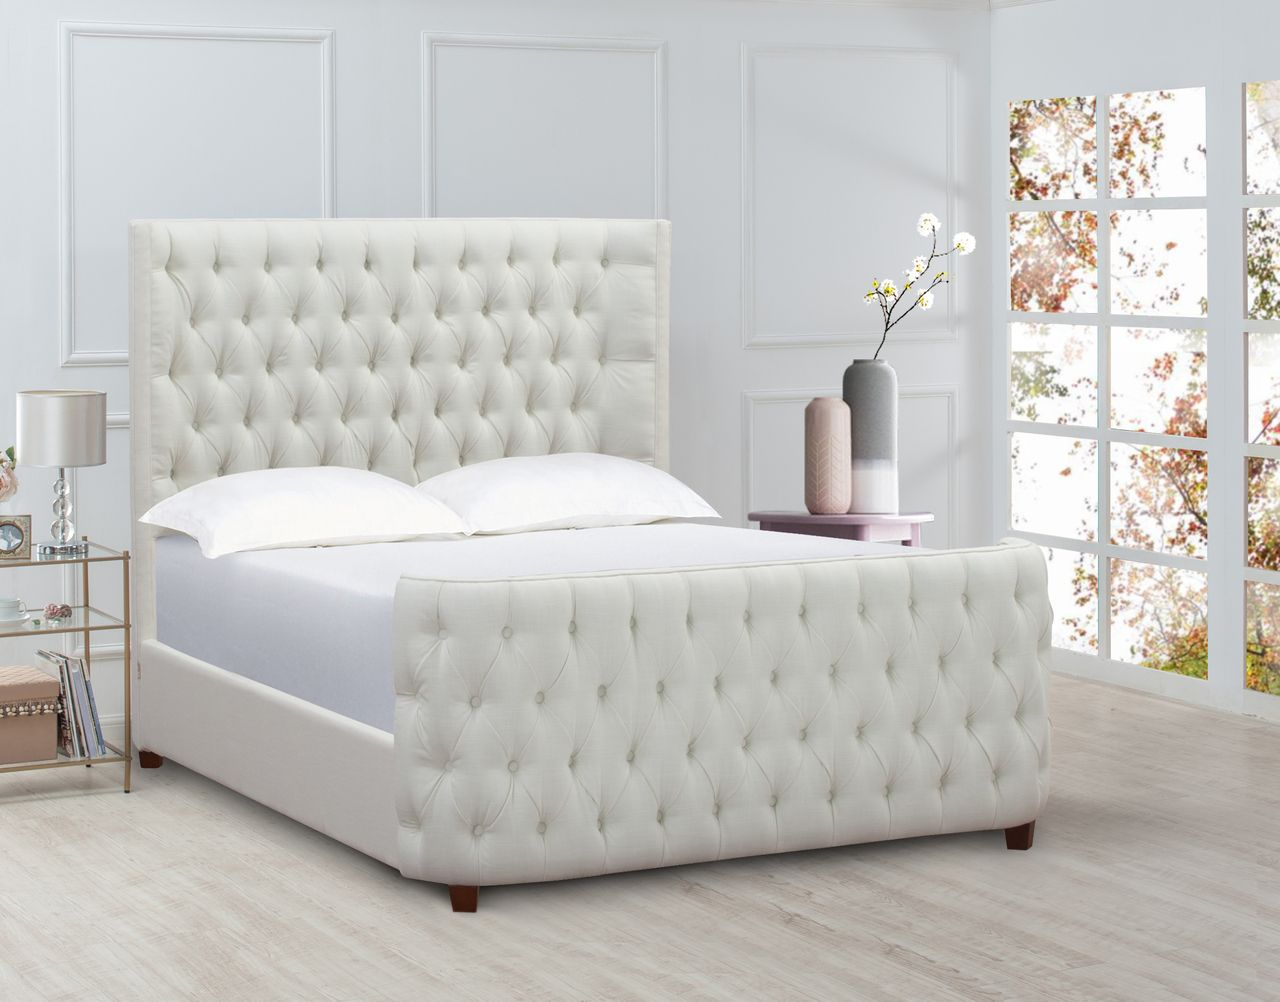 Best Brooklyn Tufted Bed Queen Antique White Tufted Bed 640 x 480